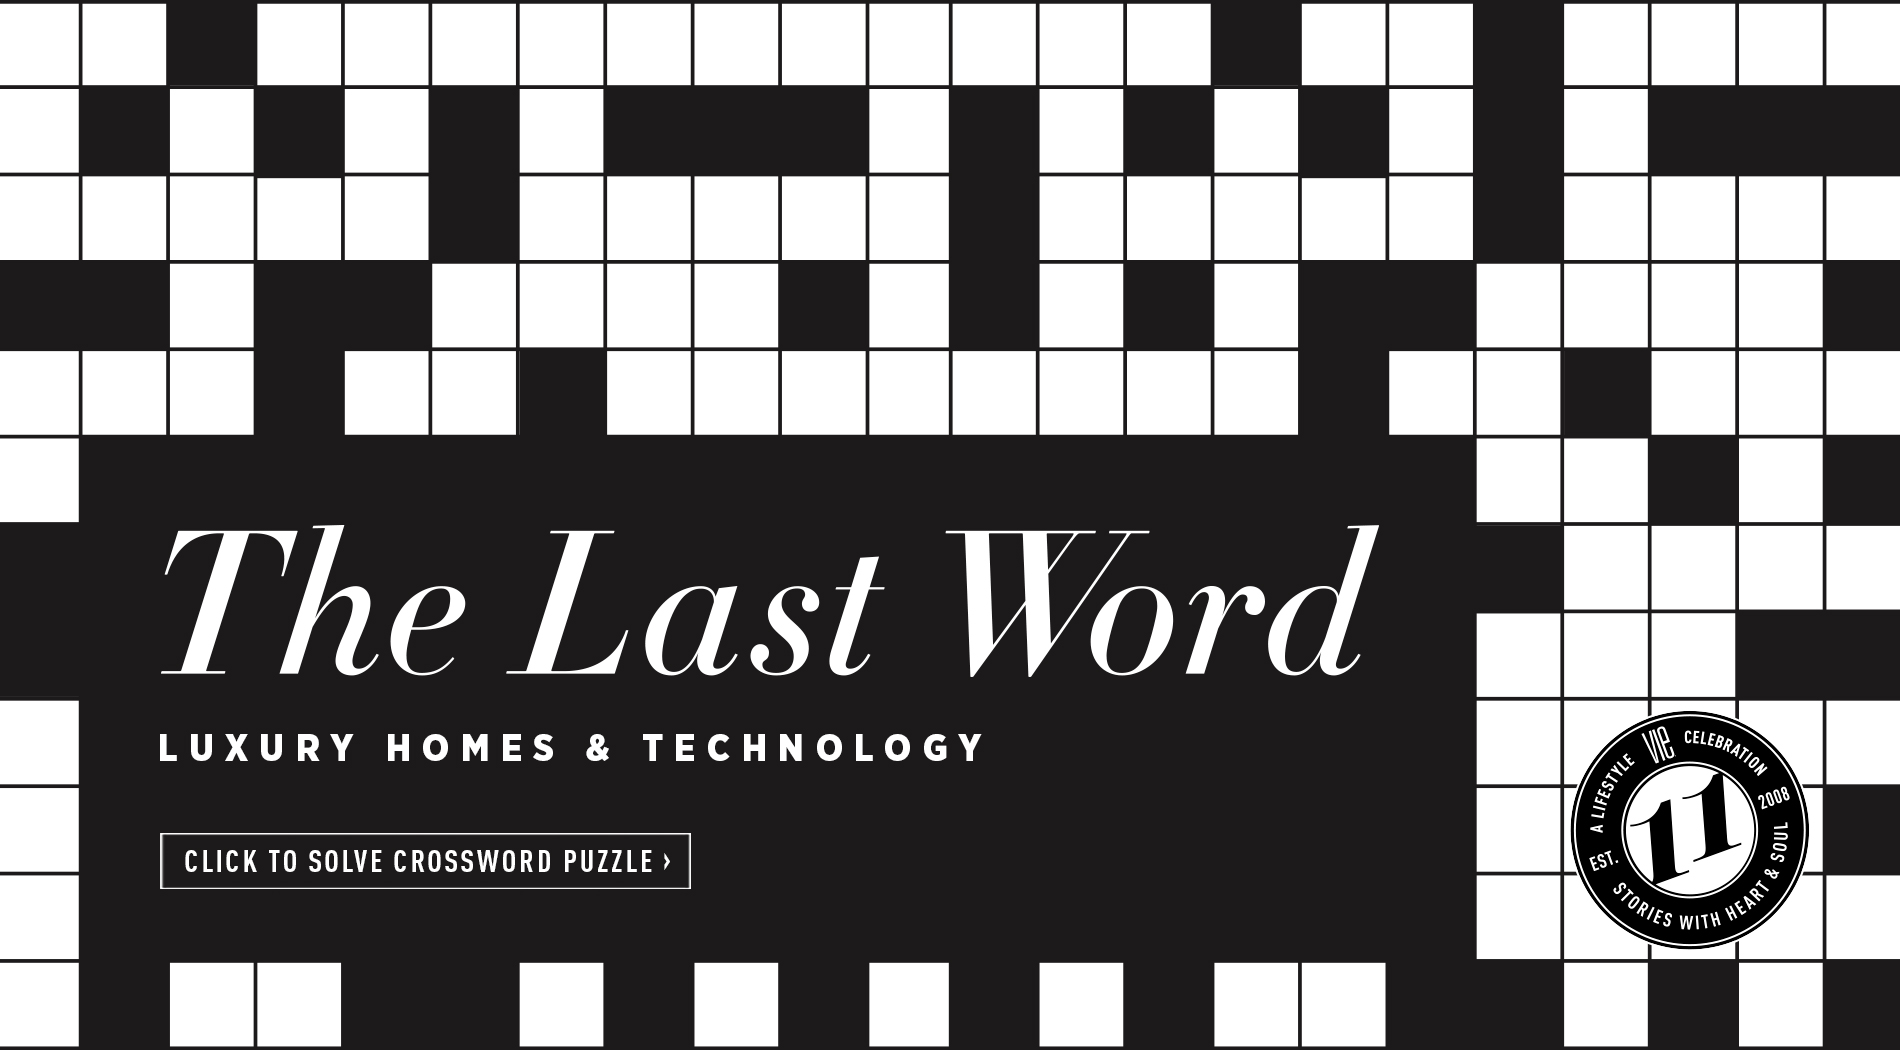 VIE Magazine February 2019 Luxury Homes & Technology Issue - Crossword Puzzle